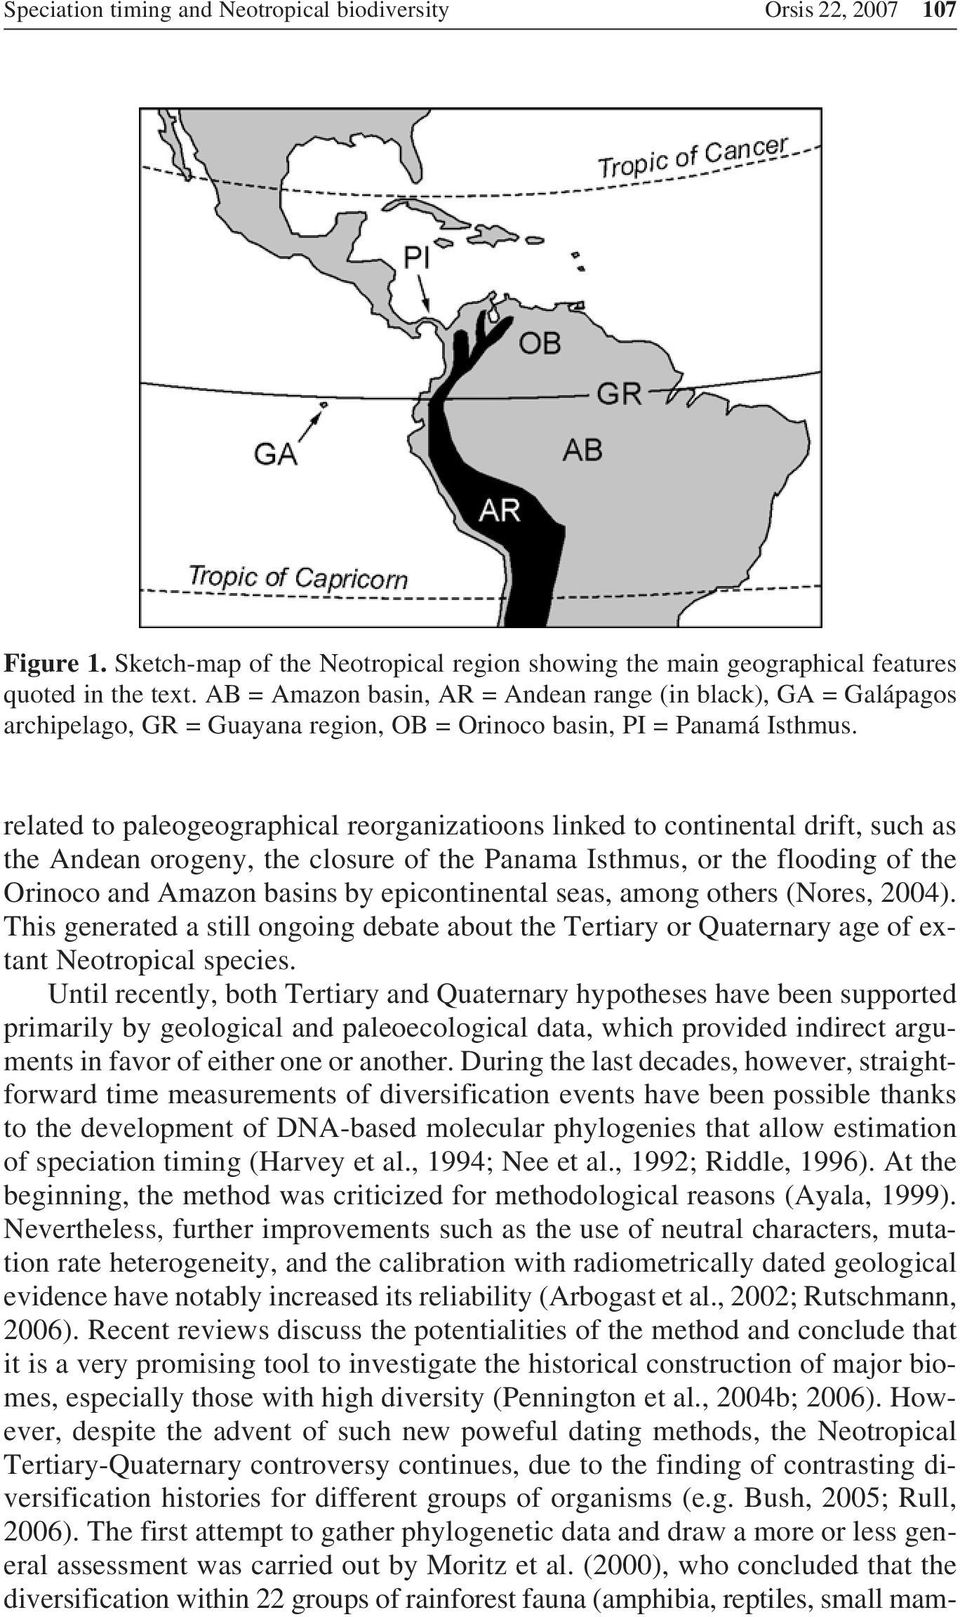 related to paleogeographical reorganizatioons linked to continental drift, such as the Andean orogeny, the closure of the Panama Isthmus, or the flooding of the Orinoco and Amazon basins by